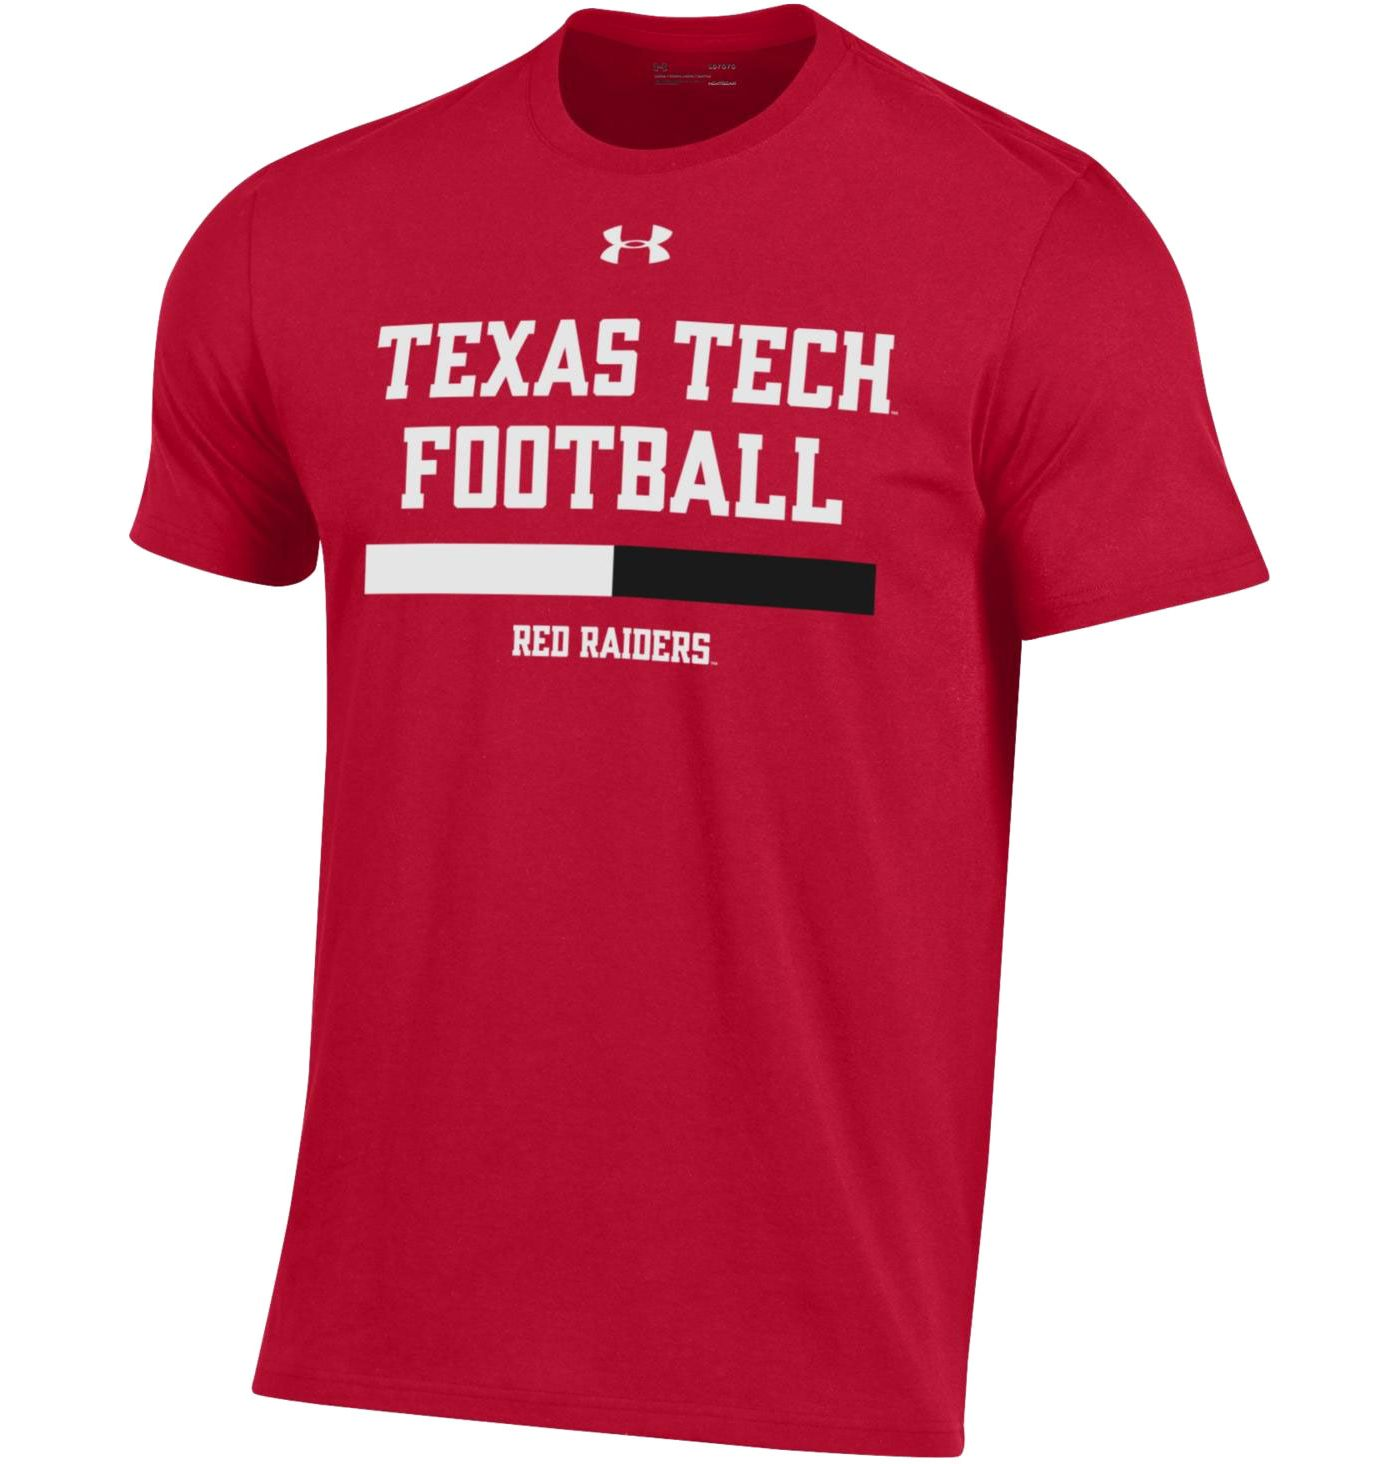 Under Armour Men's Texas Tech Red Raiders Red Performance Cotton Sideline Football T-Shirt